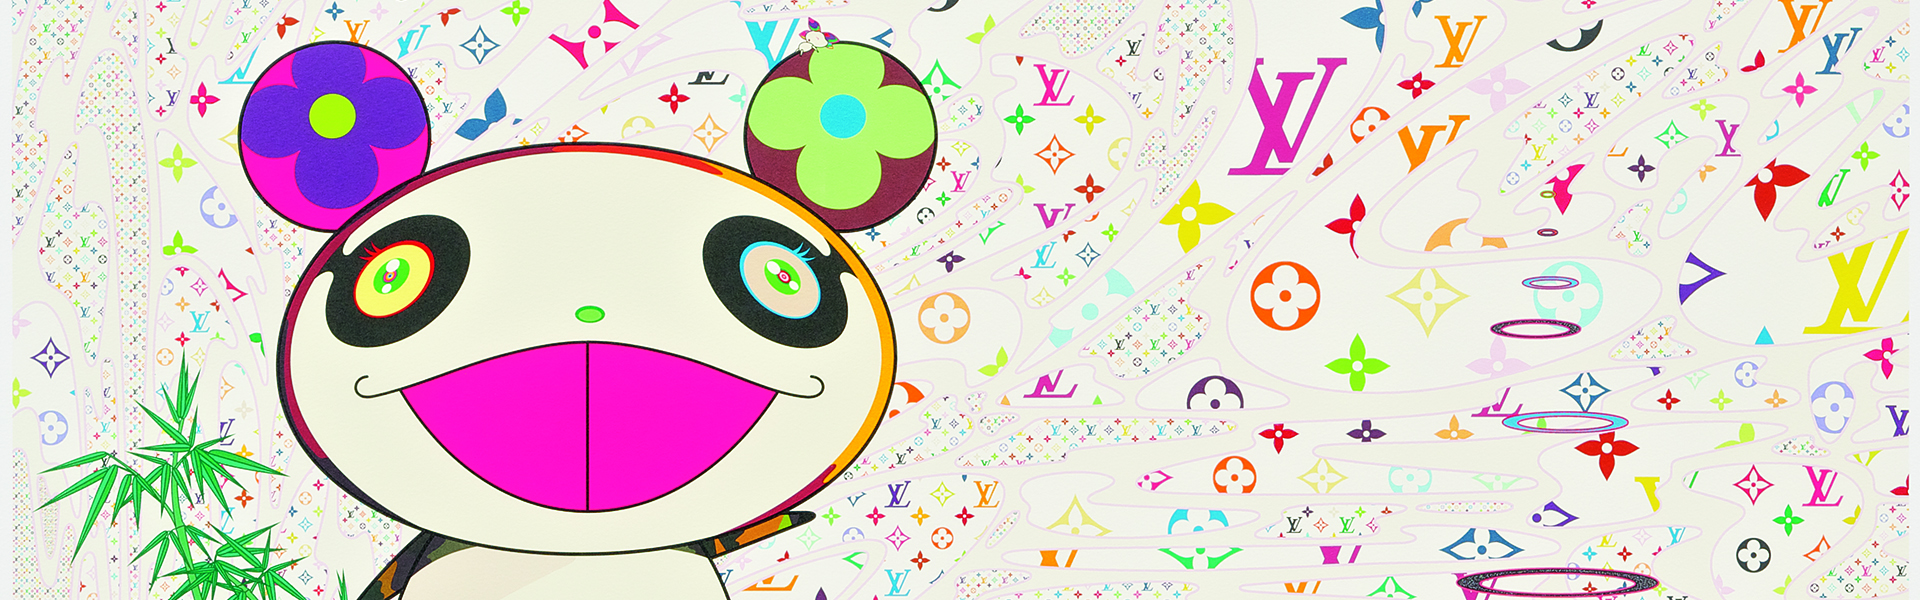 Takashi Murakami Collab With Louis Vuitton Jaguar Clubs Of